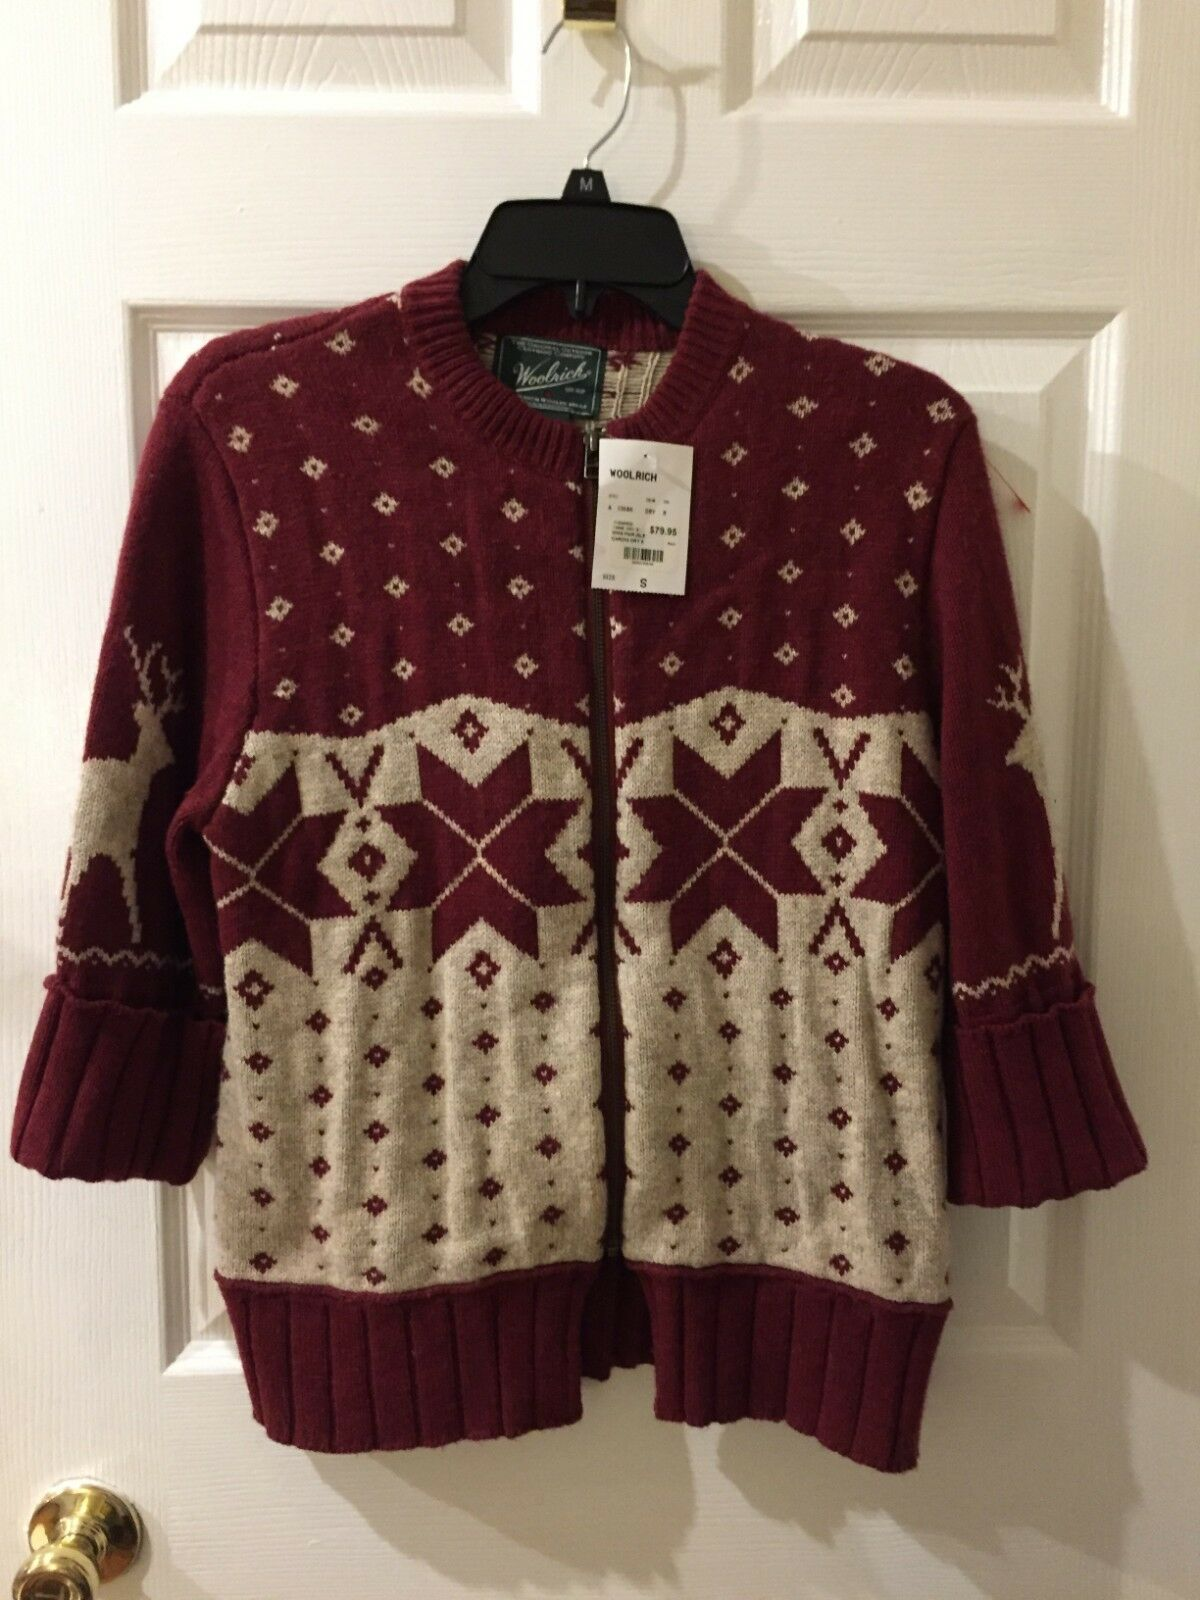 Woolrich Zip Sweater Women's Size Small, New With Tags